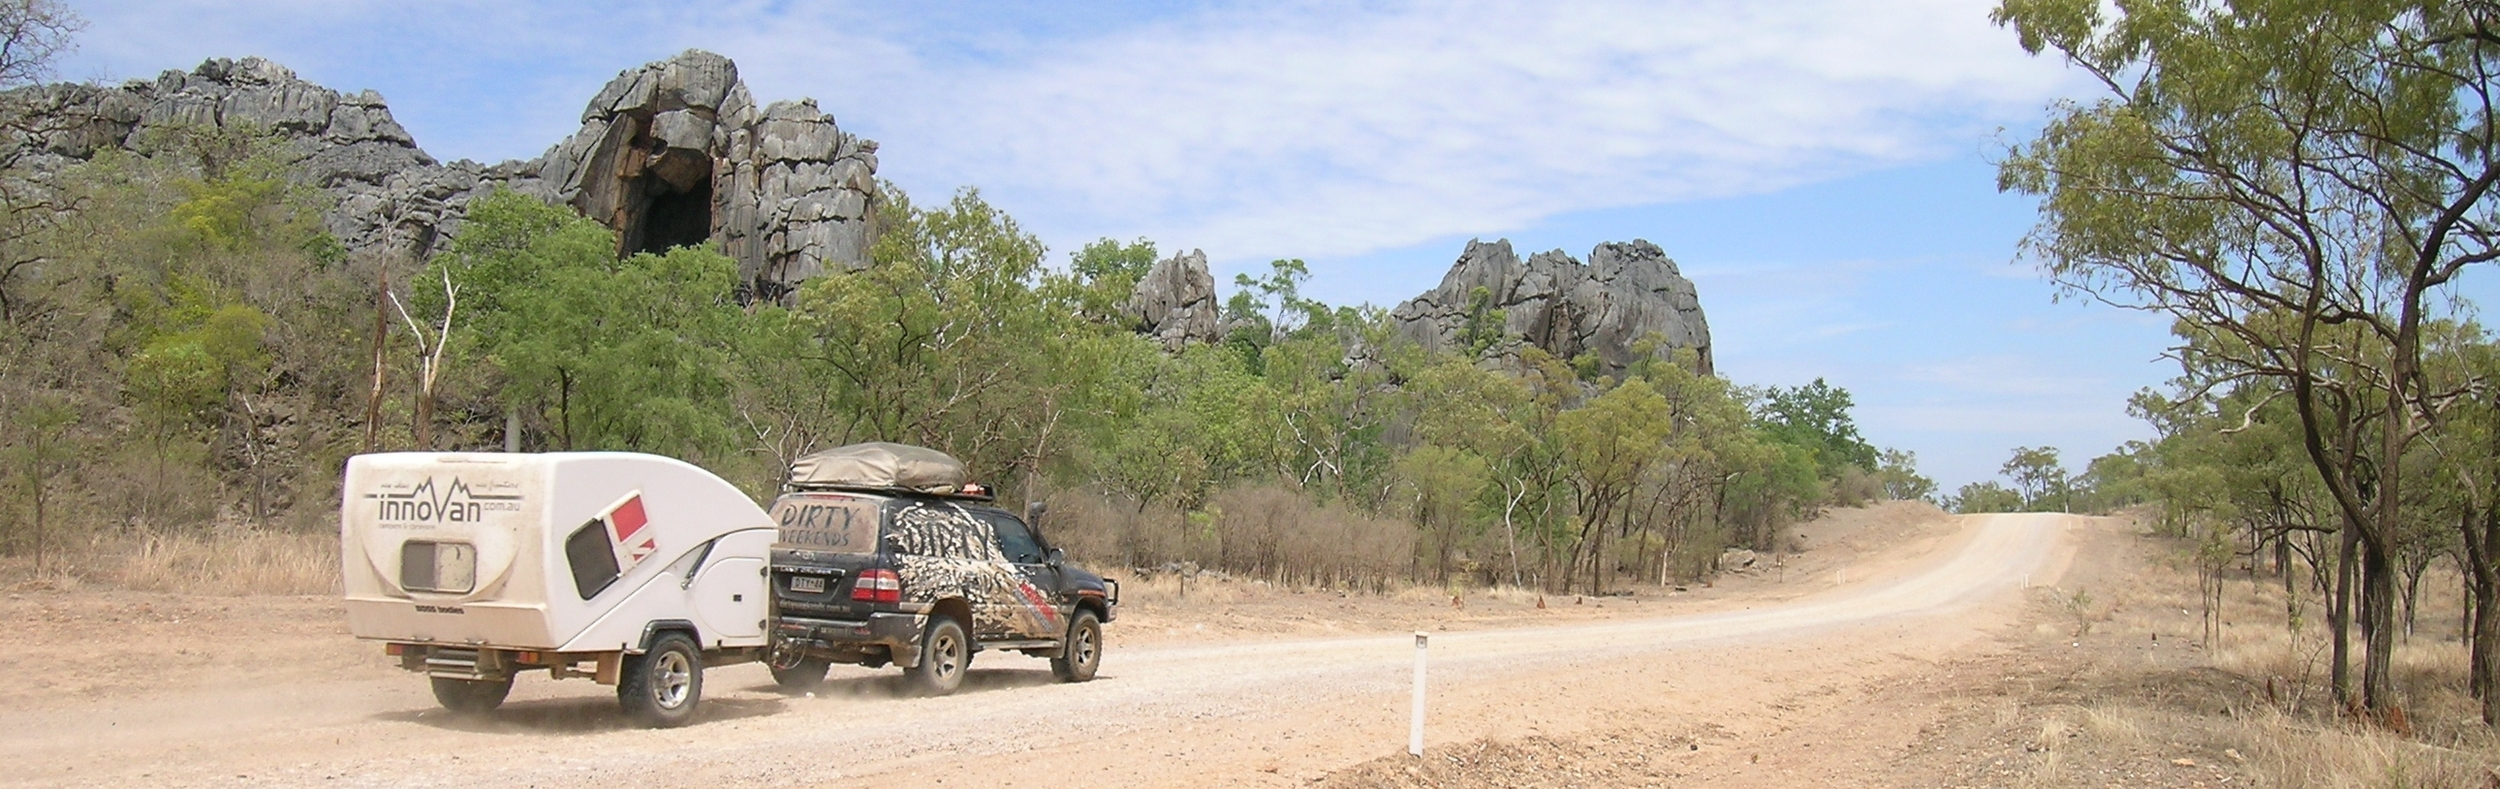 An early innovan caravan prototype on test in remote Far North Queensland